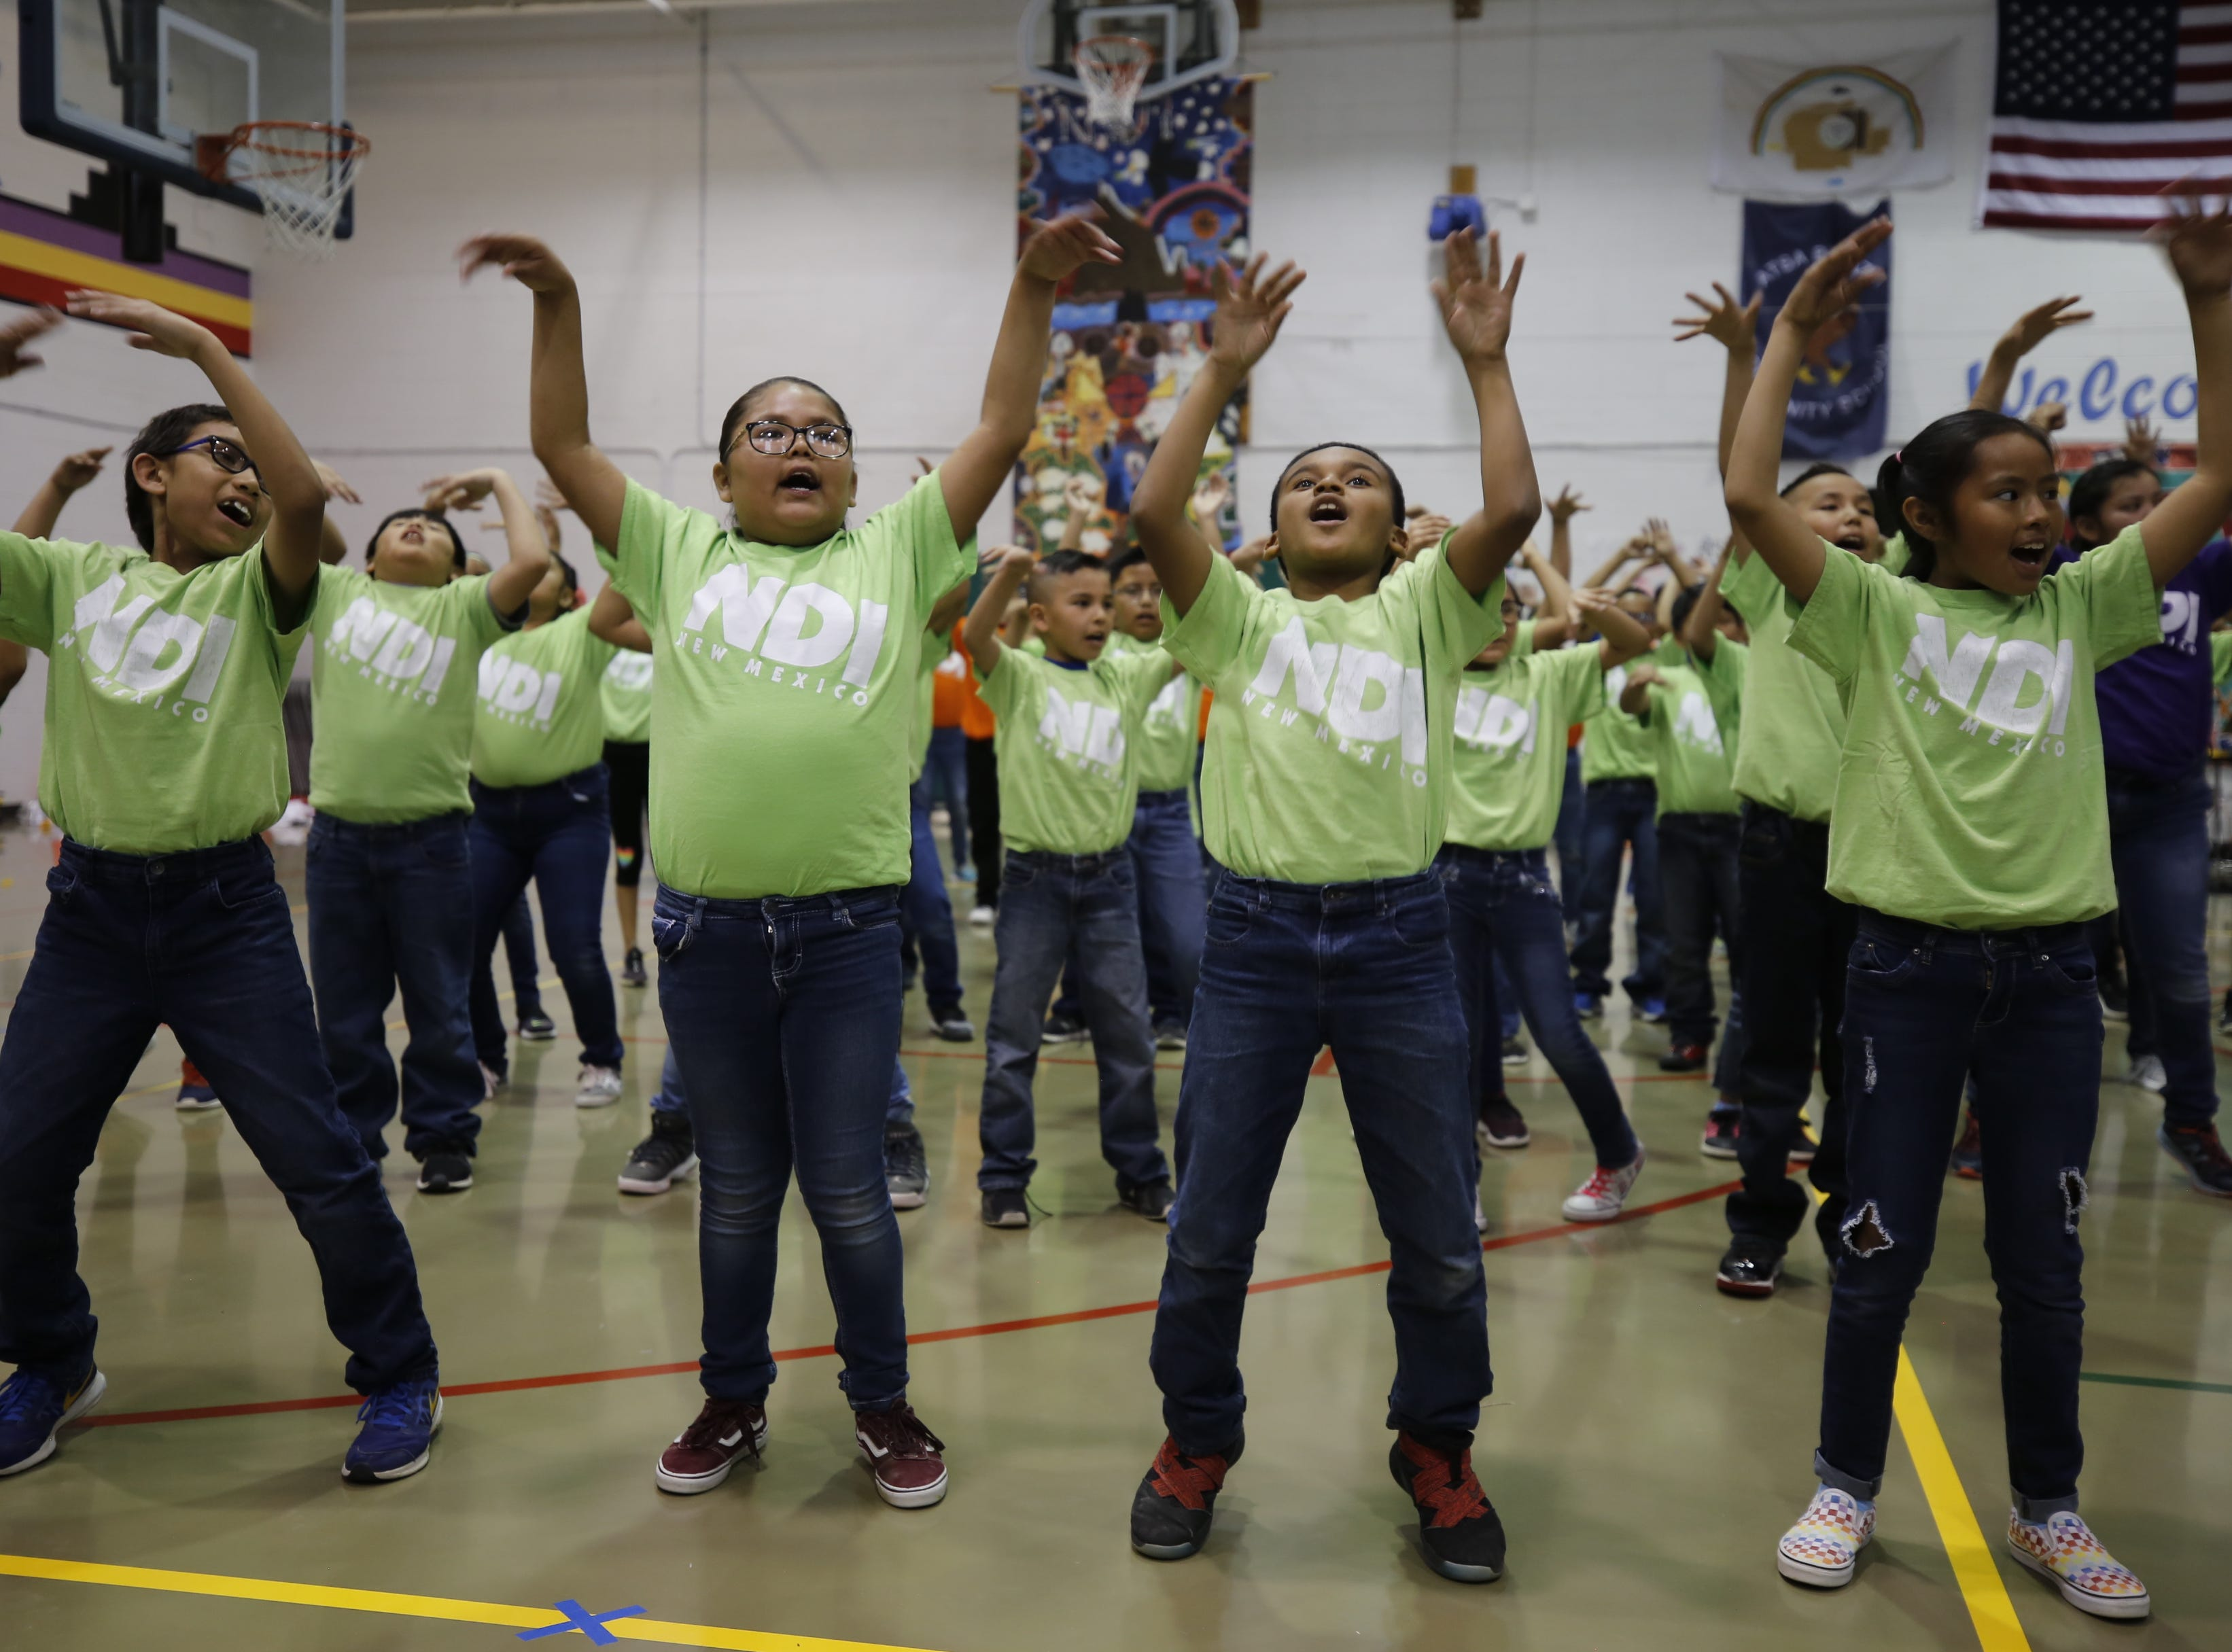 Atsá Biyáázh Community School students dance in a production that focuses on mathematics on Friday at the school in Shiprock.